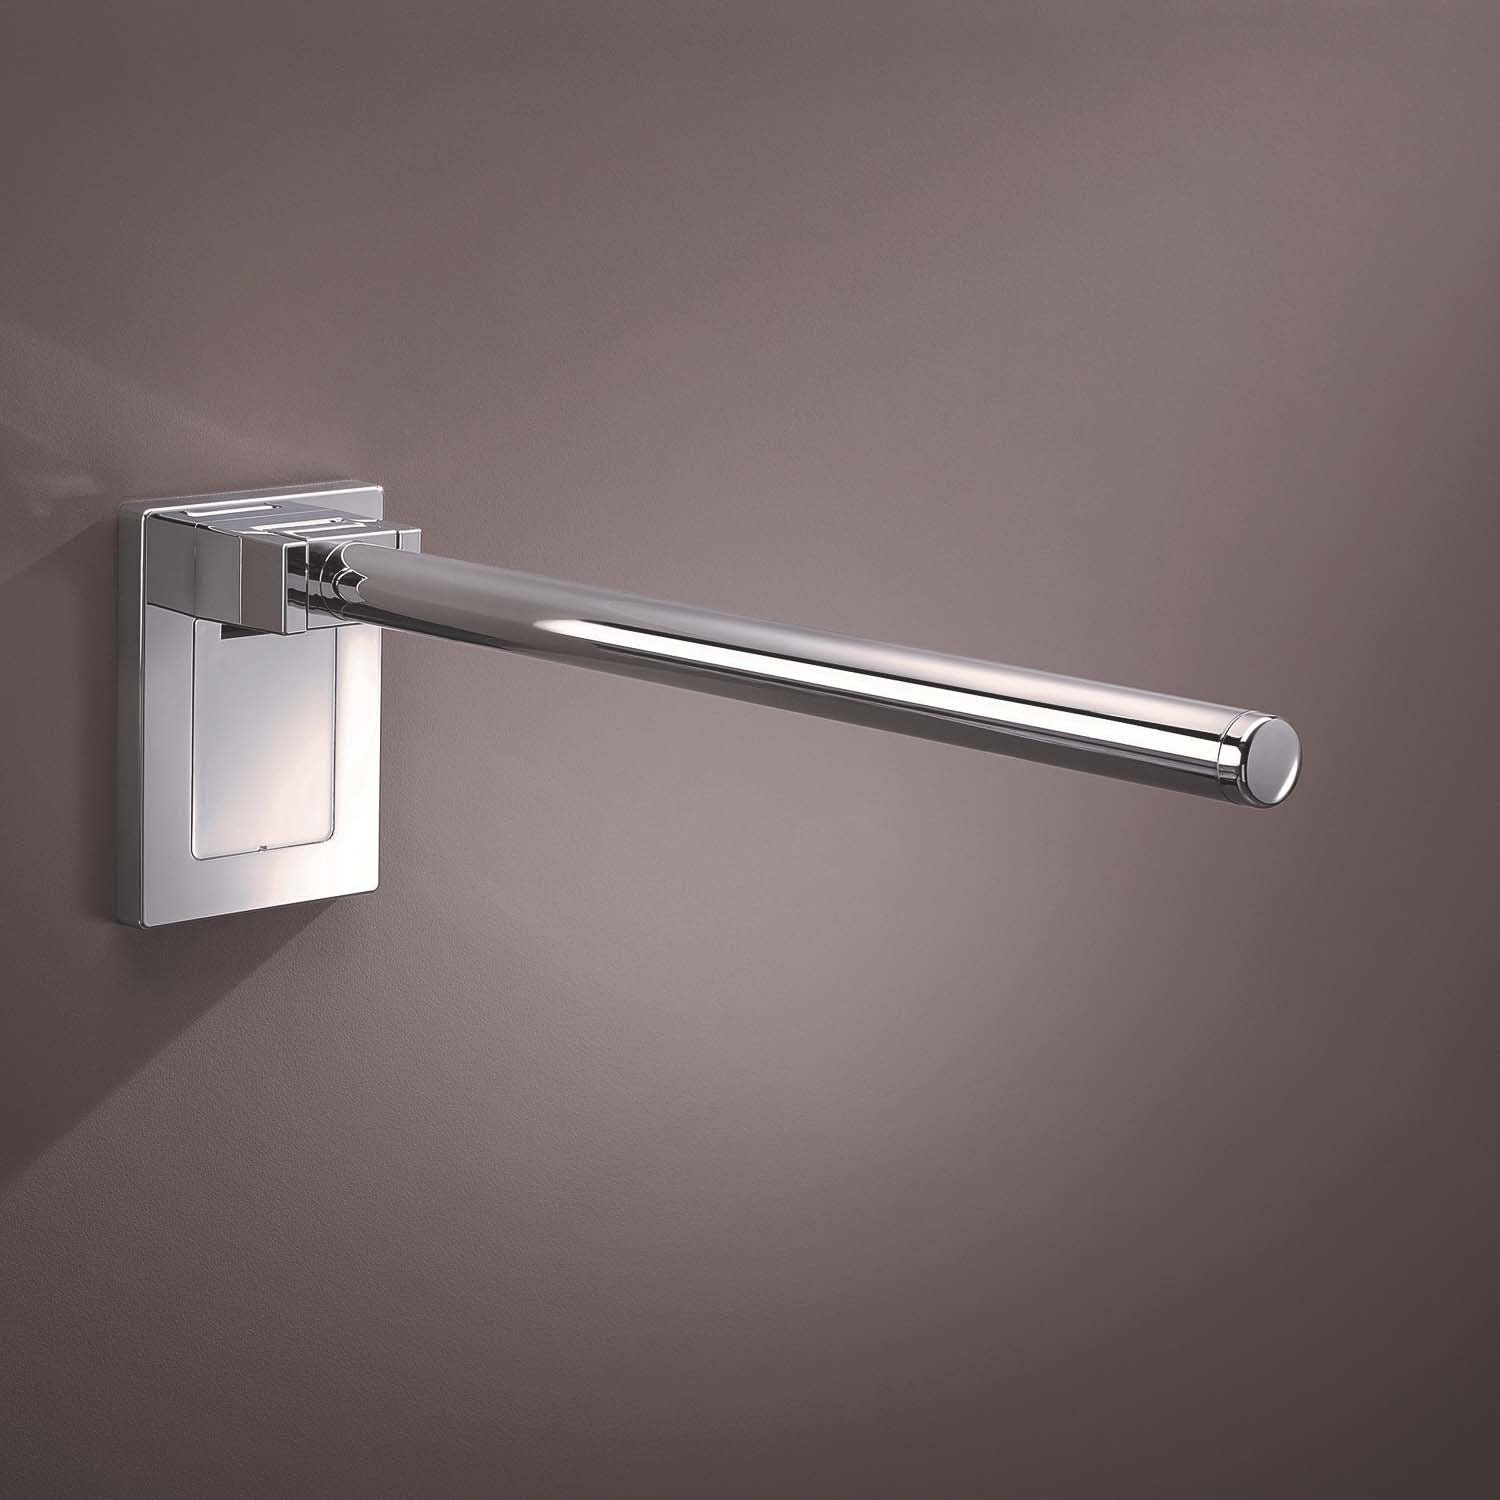 600mm Circula Hinged Grab Rail with a chrome-look finish lifestyle image